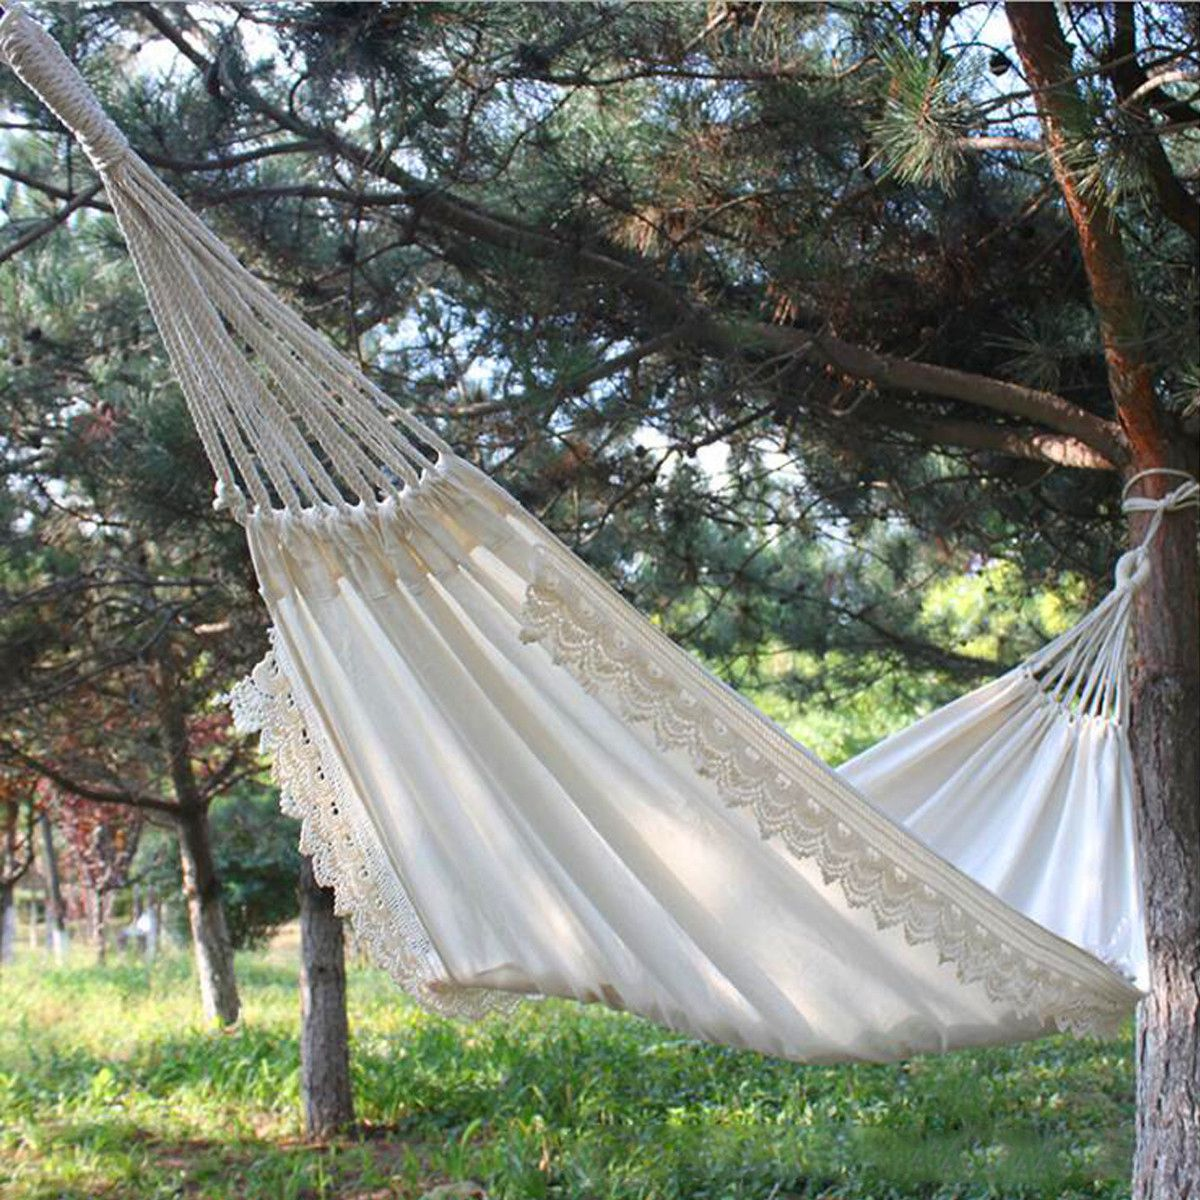 ABFP Outdoor Camping Hammock Swing Portable Hanging Chair Pure White Romantic Lace For Travel Hiking Garden Sleeping Swing Por